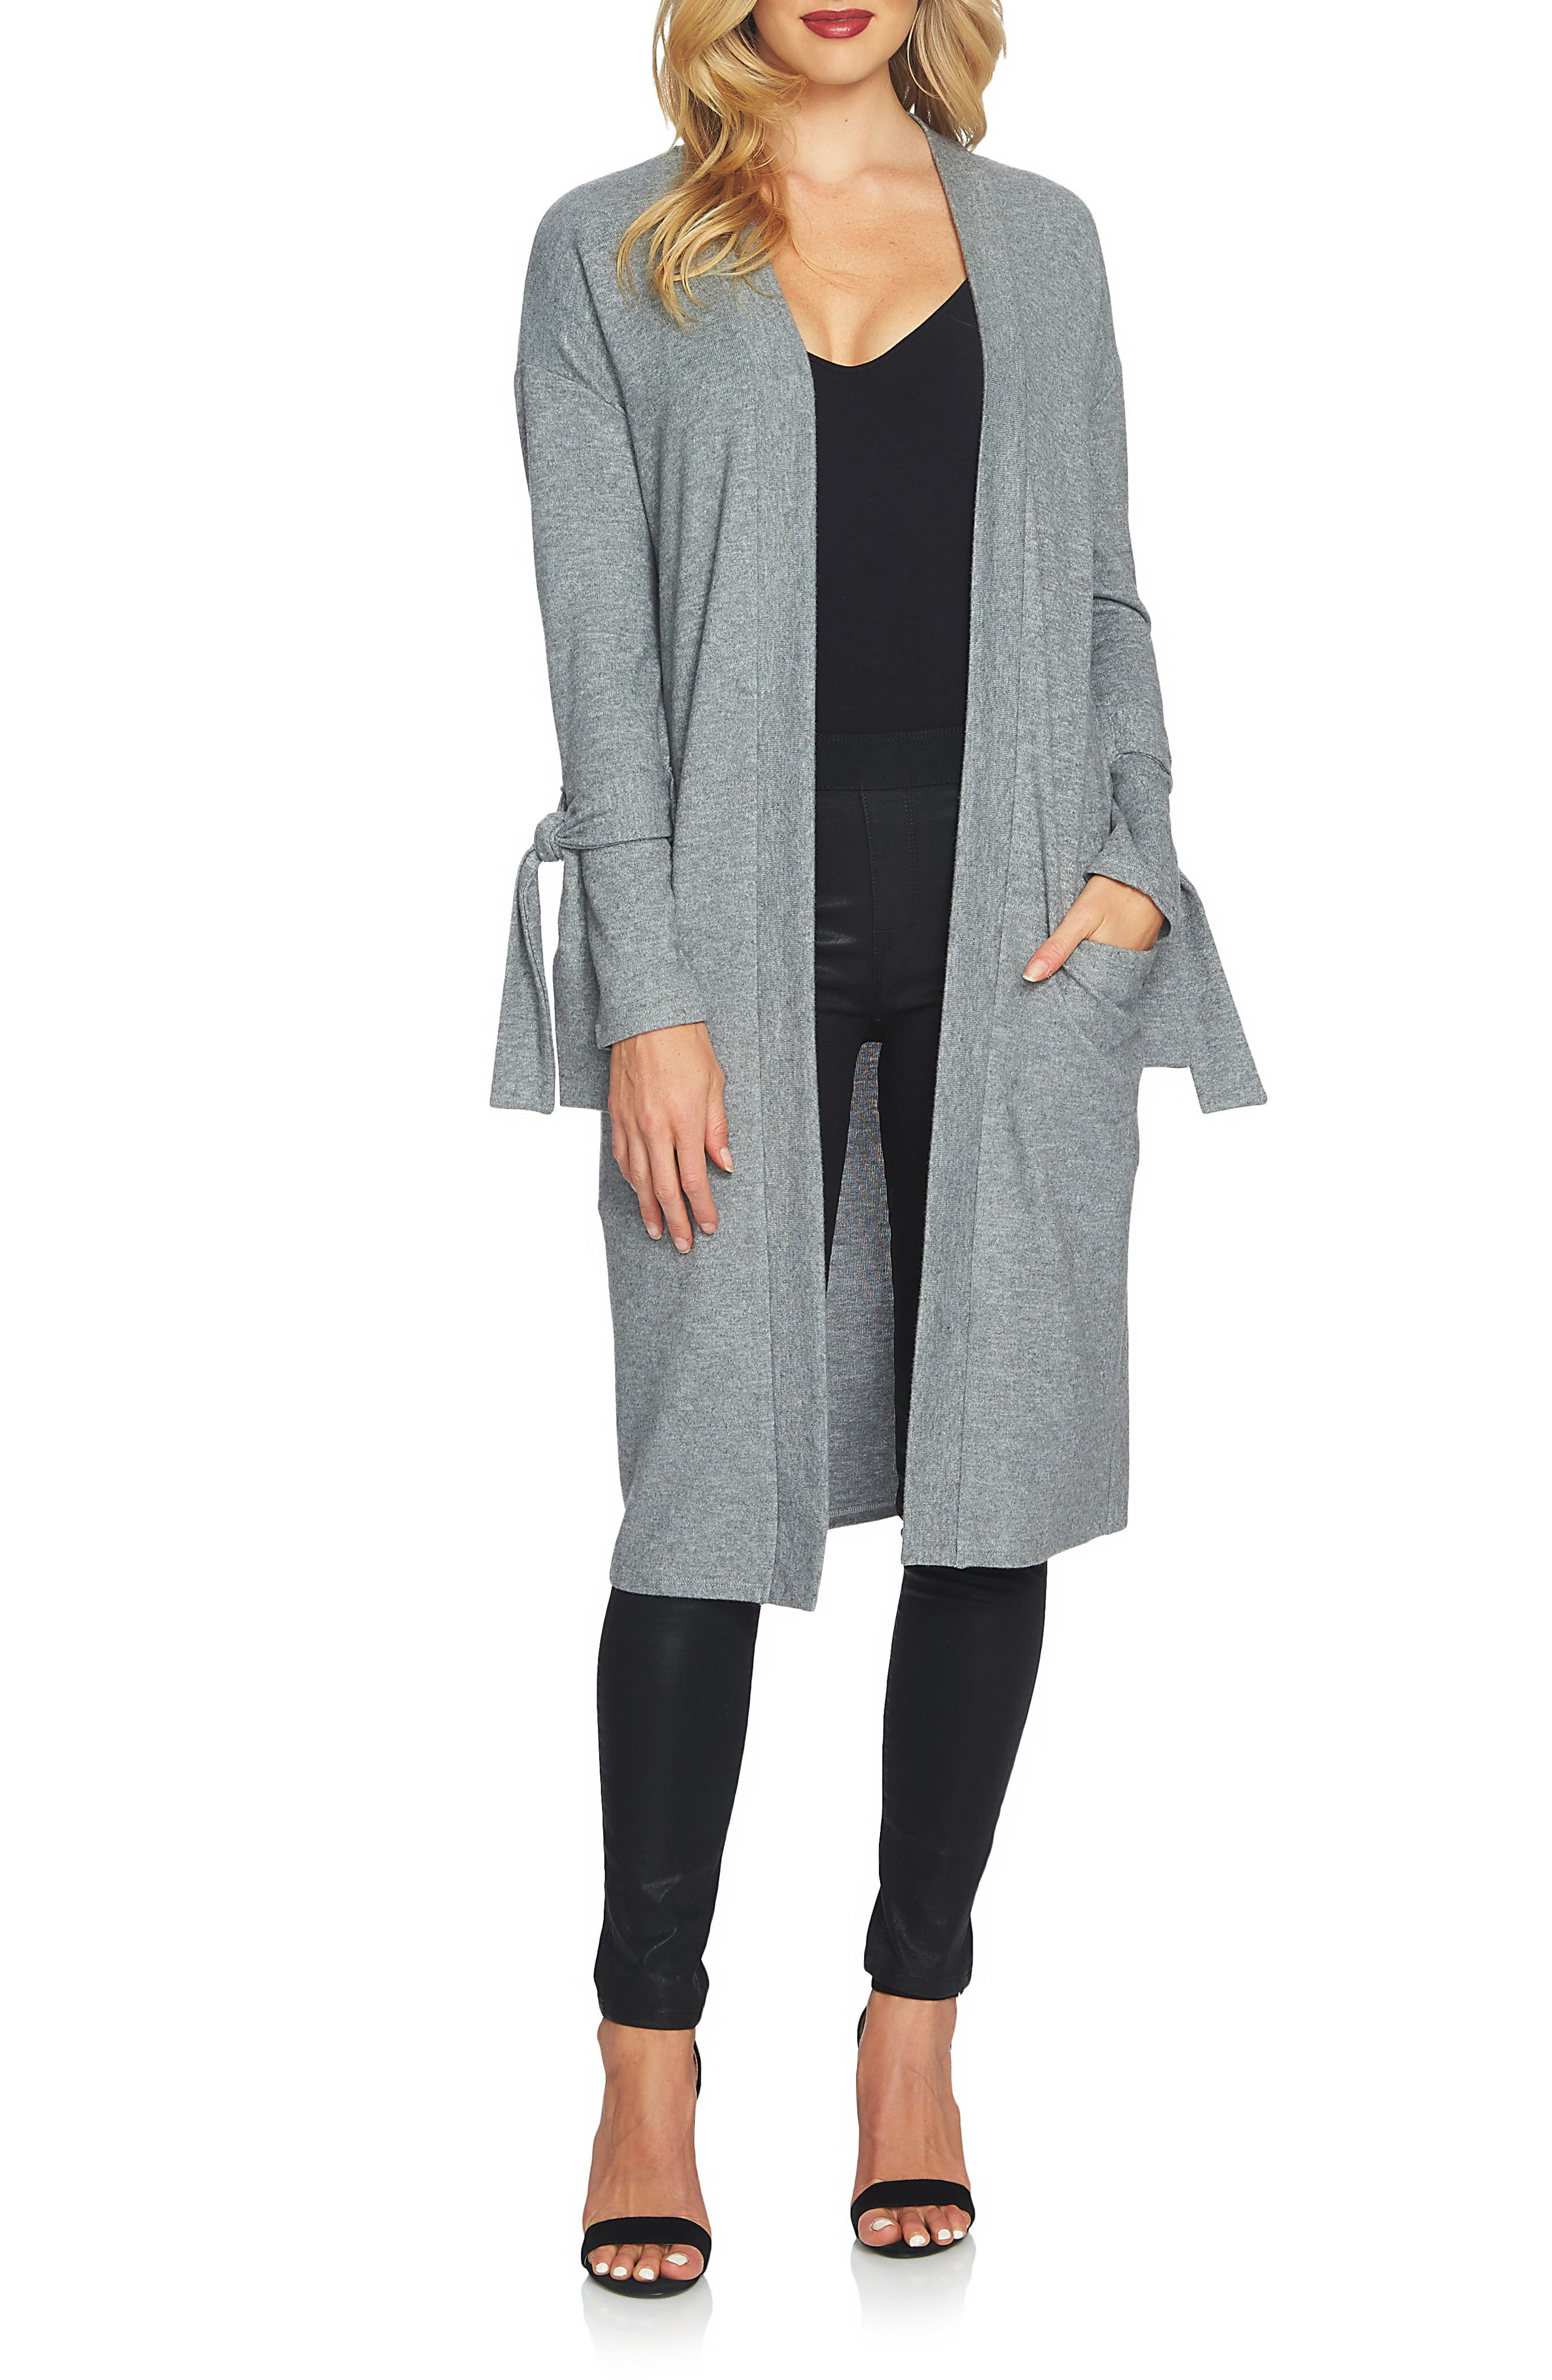 Main Image - 1.STATE The Cozy Tie Sleeve Cardigan